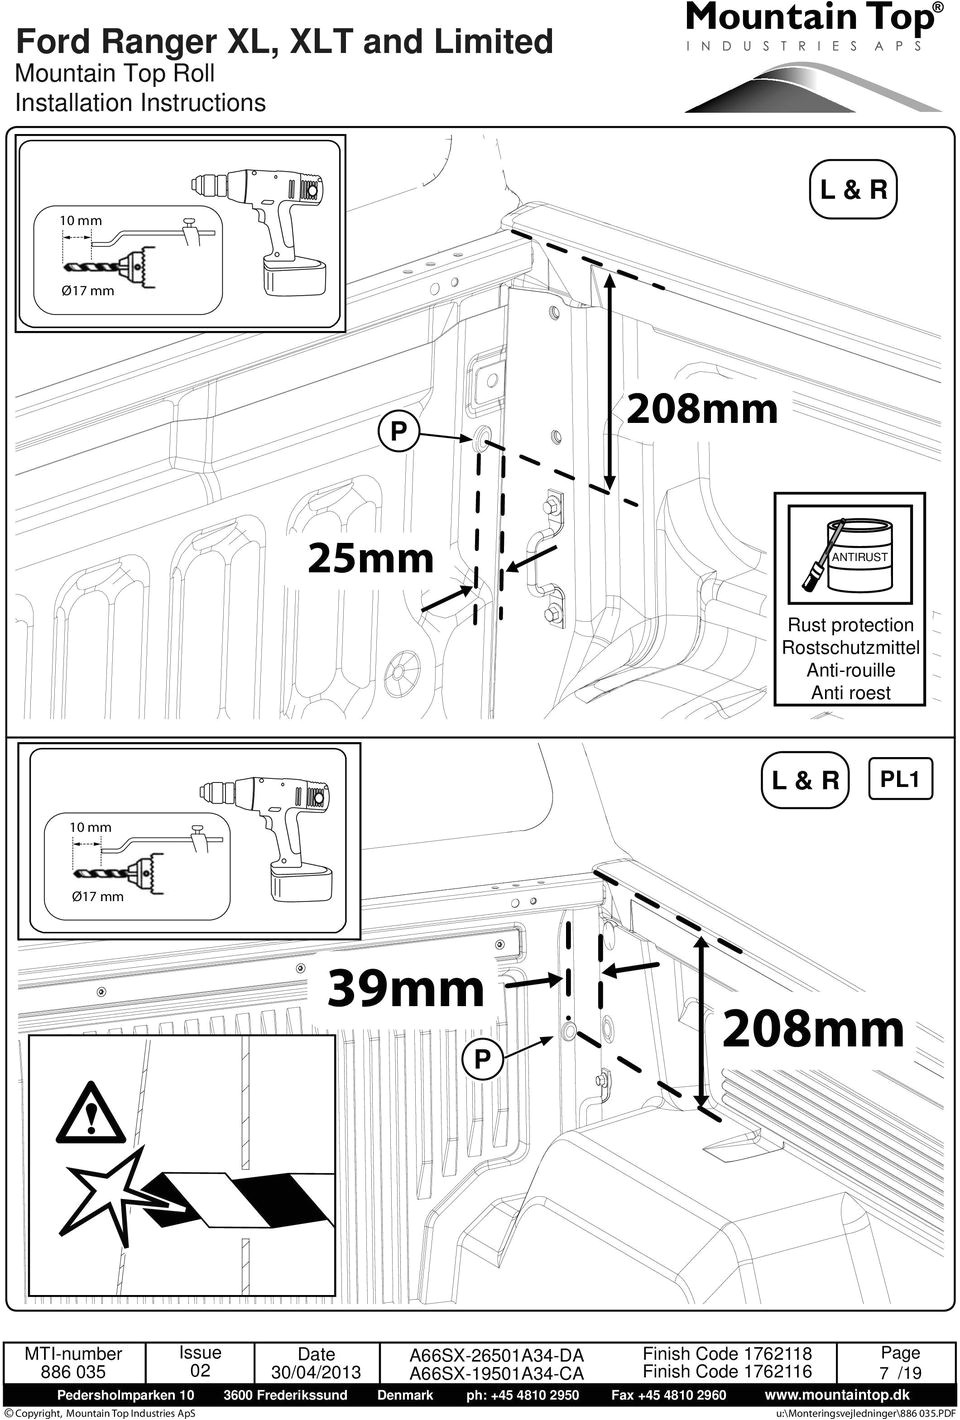 ford ranger xl xlt and limited mountain top roll installation instructions pdf